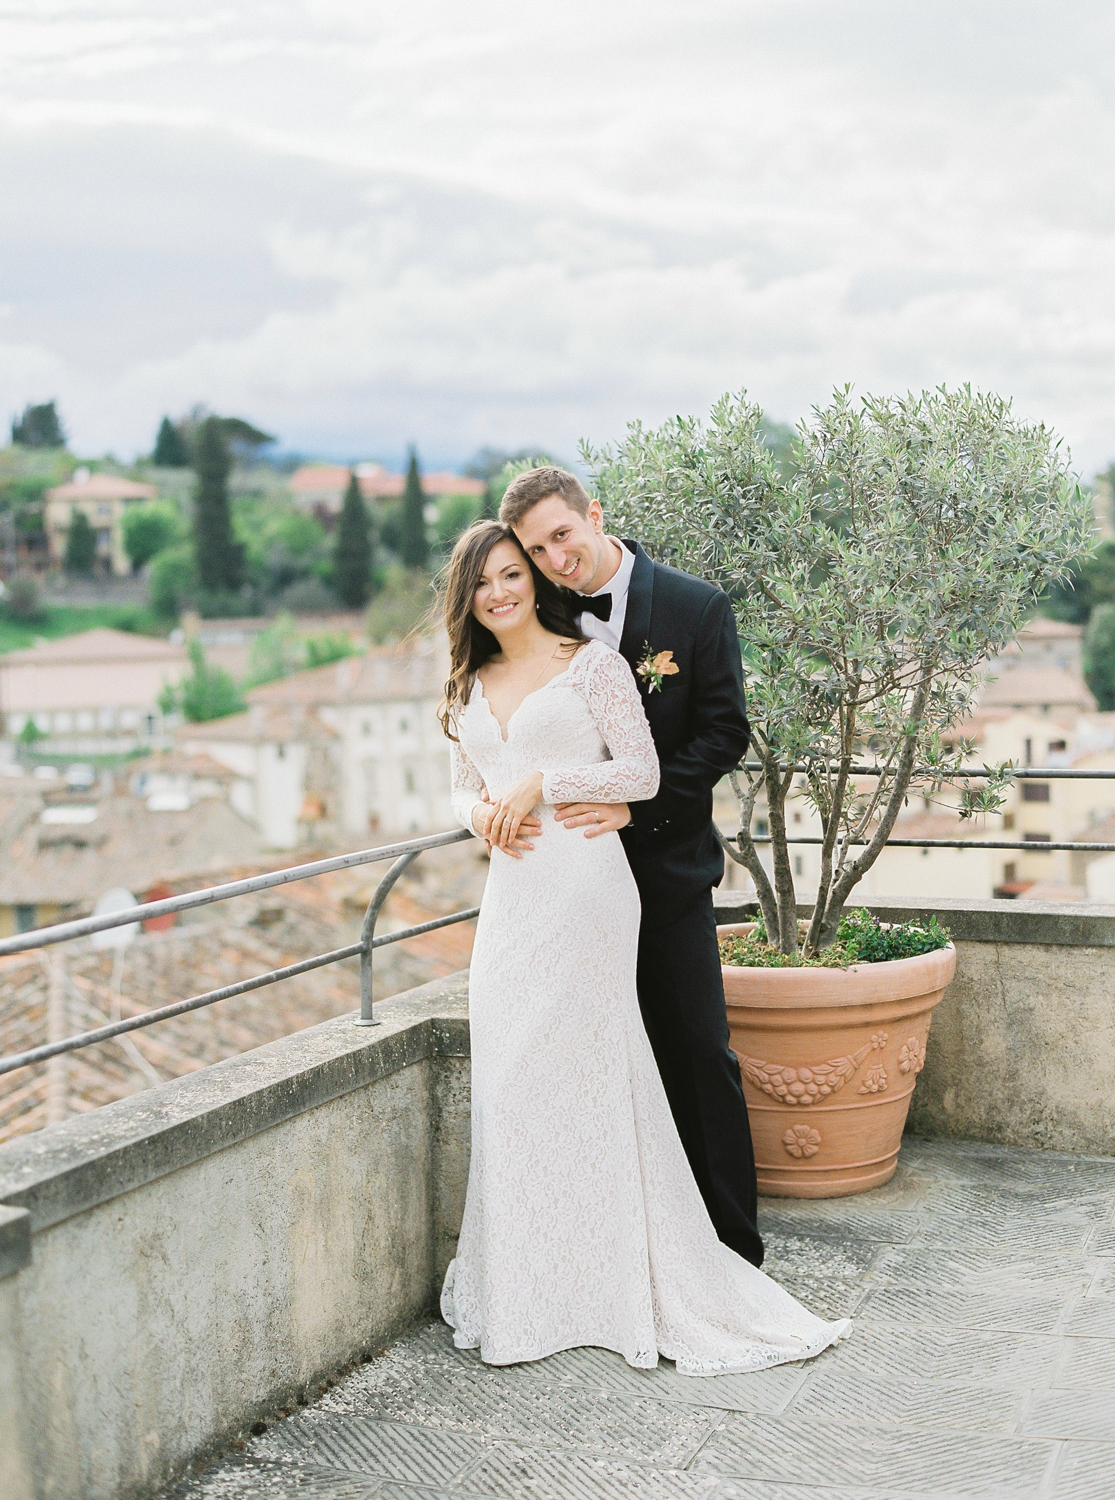 masha golub photography 15 1 - LOVE IN TUSCANY